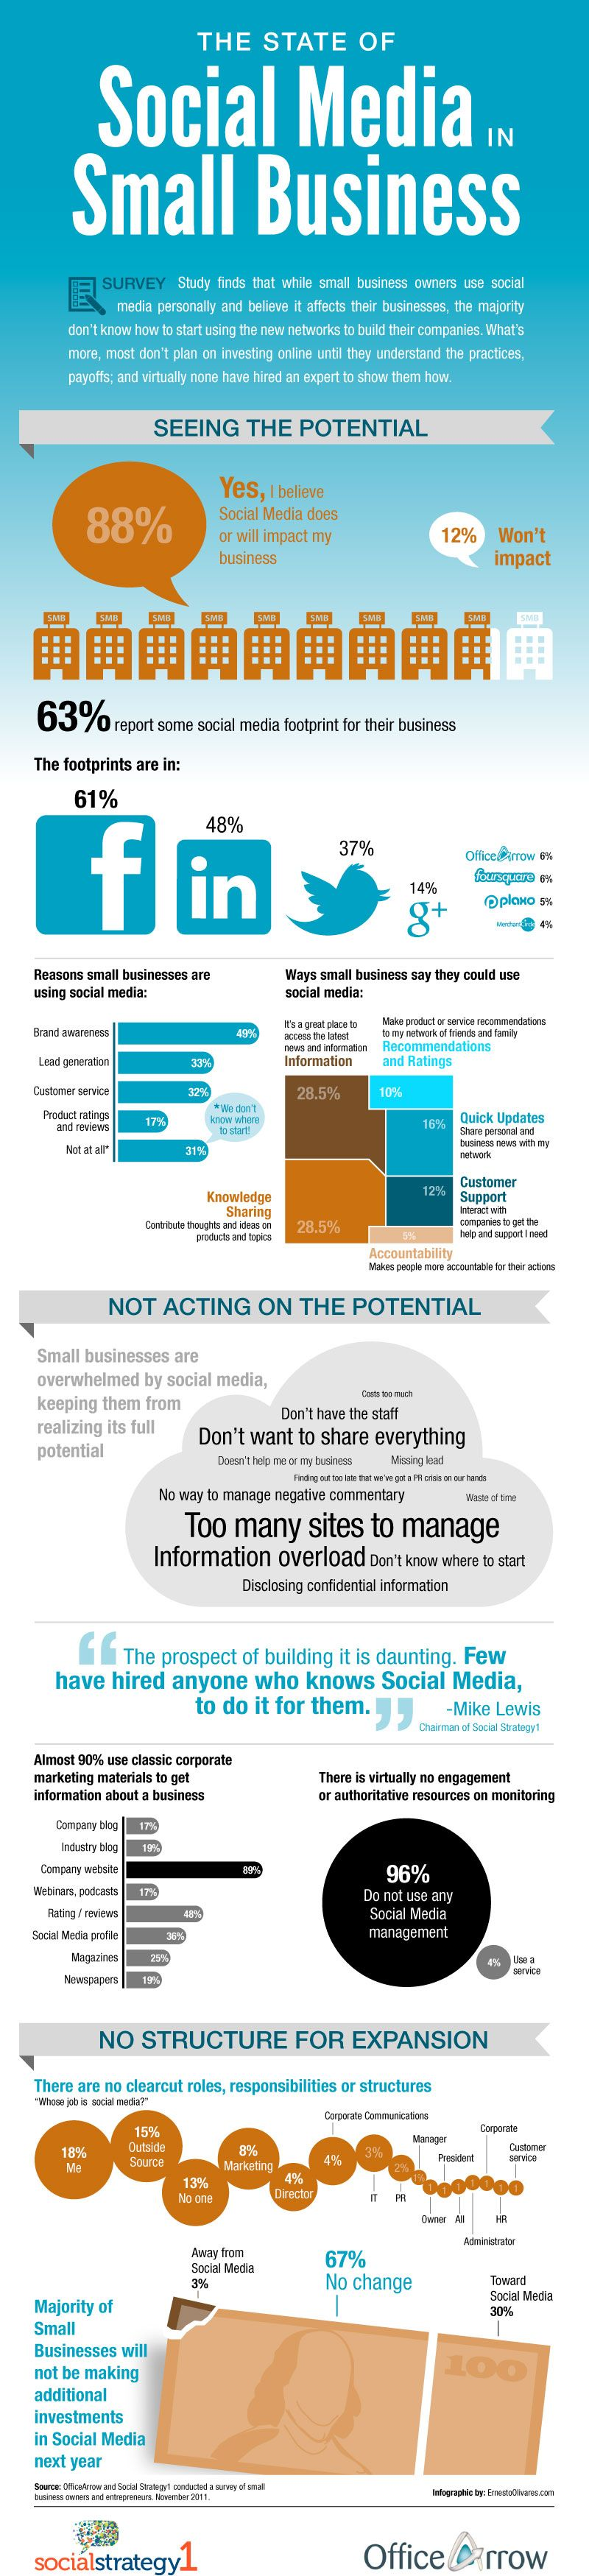 Social Media Infographic Small Business Social Media Social Media Infographic Social Media Business